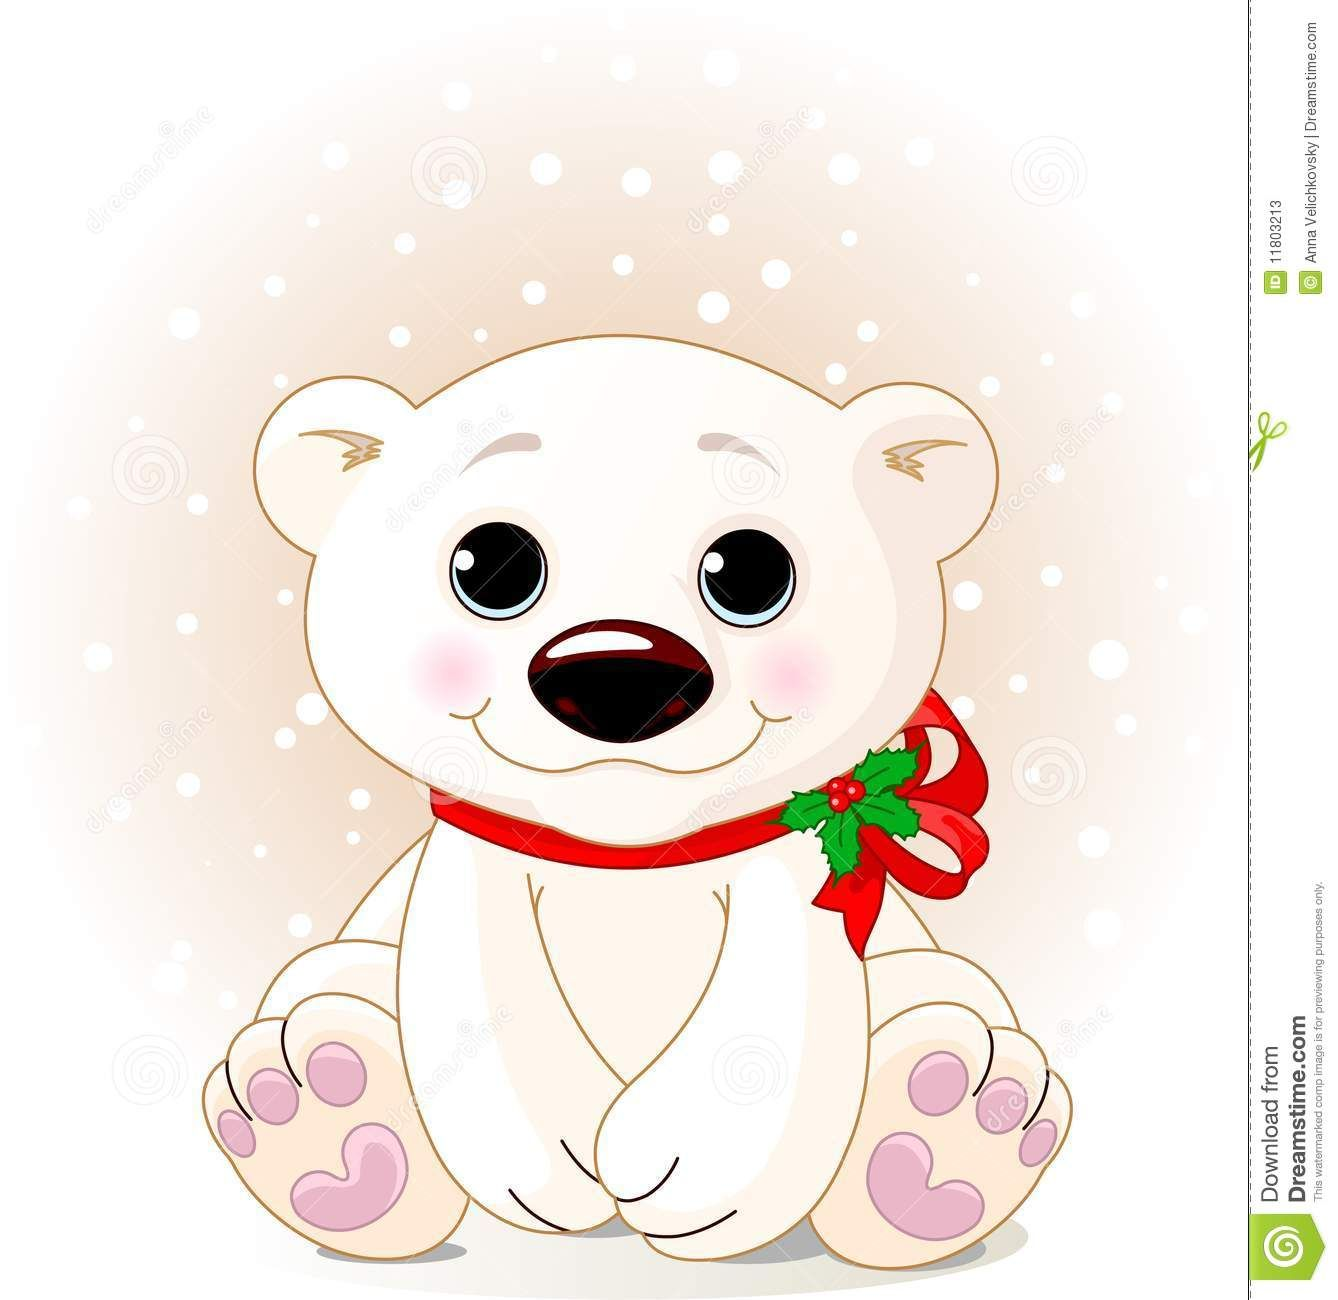 christmas polar bears.